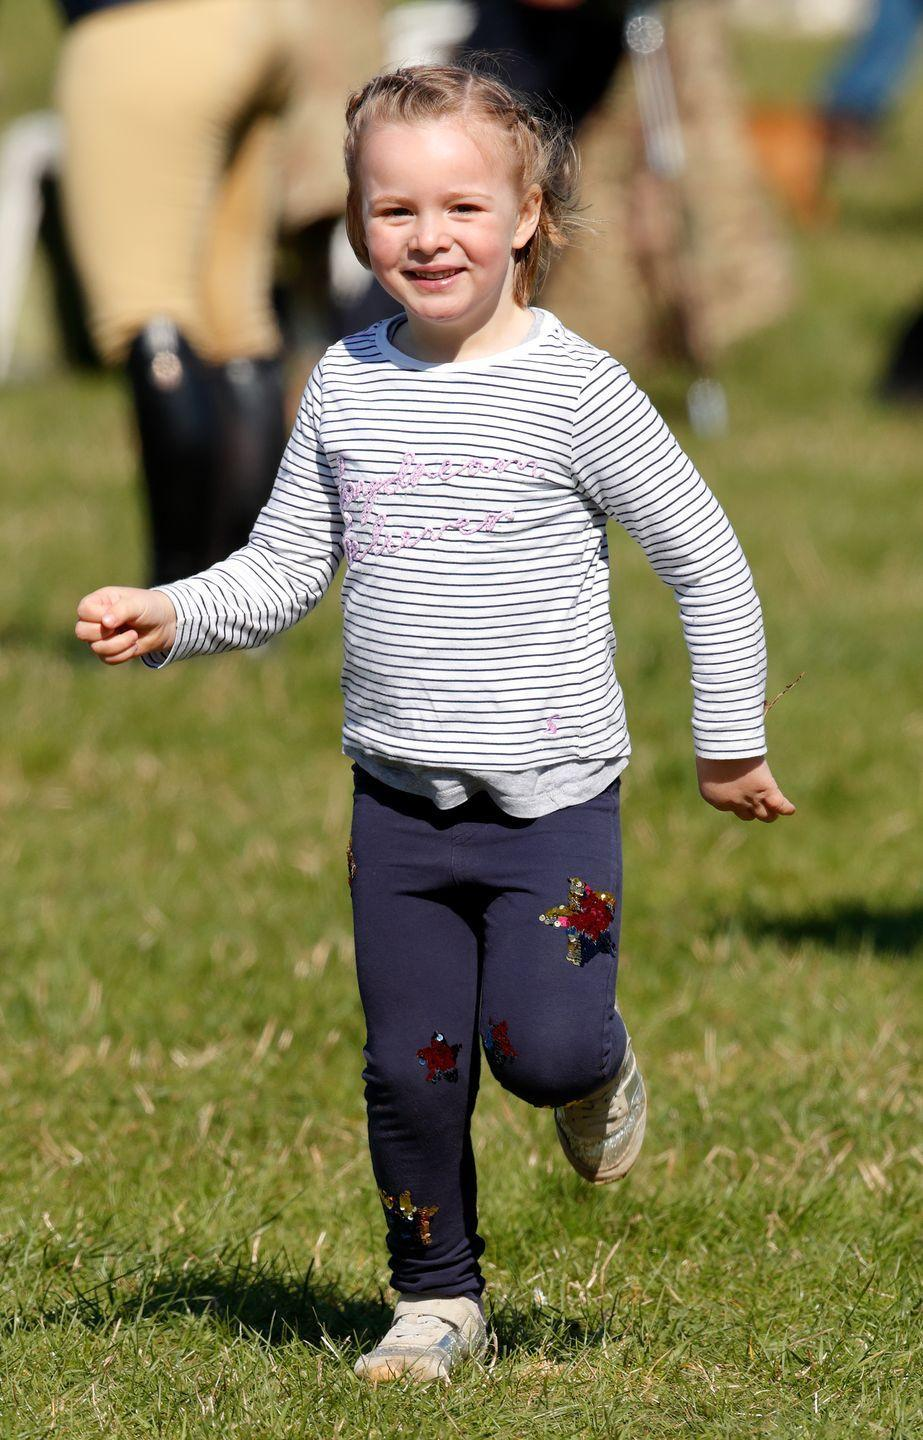 """<p><strong>Branch of the Family Tree: </strong>Daughter of Zara Tindall; great-granddaughter of Queen Elizabeth II</p><p><strong>More: </strong><a href=""""https://www.townandcountrymag.com/society/tradition/a15158722/mia-tindall-facts/"""" rel=""""nofollow noopener"""" target=""""_blank"""" data-ylk=""""slk:Meet the Queen's Great-Granddaughter Mia Tindall"""" class=""""link rapid-noclick-resp"""">Meet the Queen's Great-Granddaughter Mia Tindall </a></p>"""